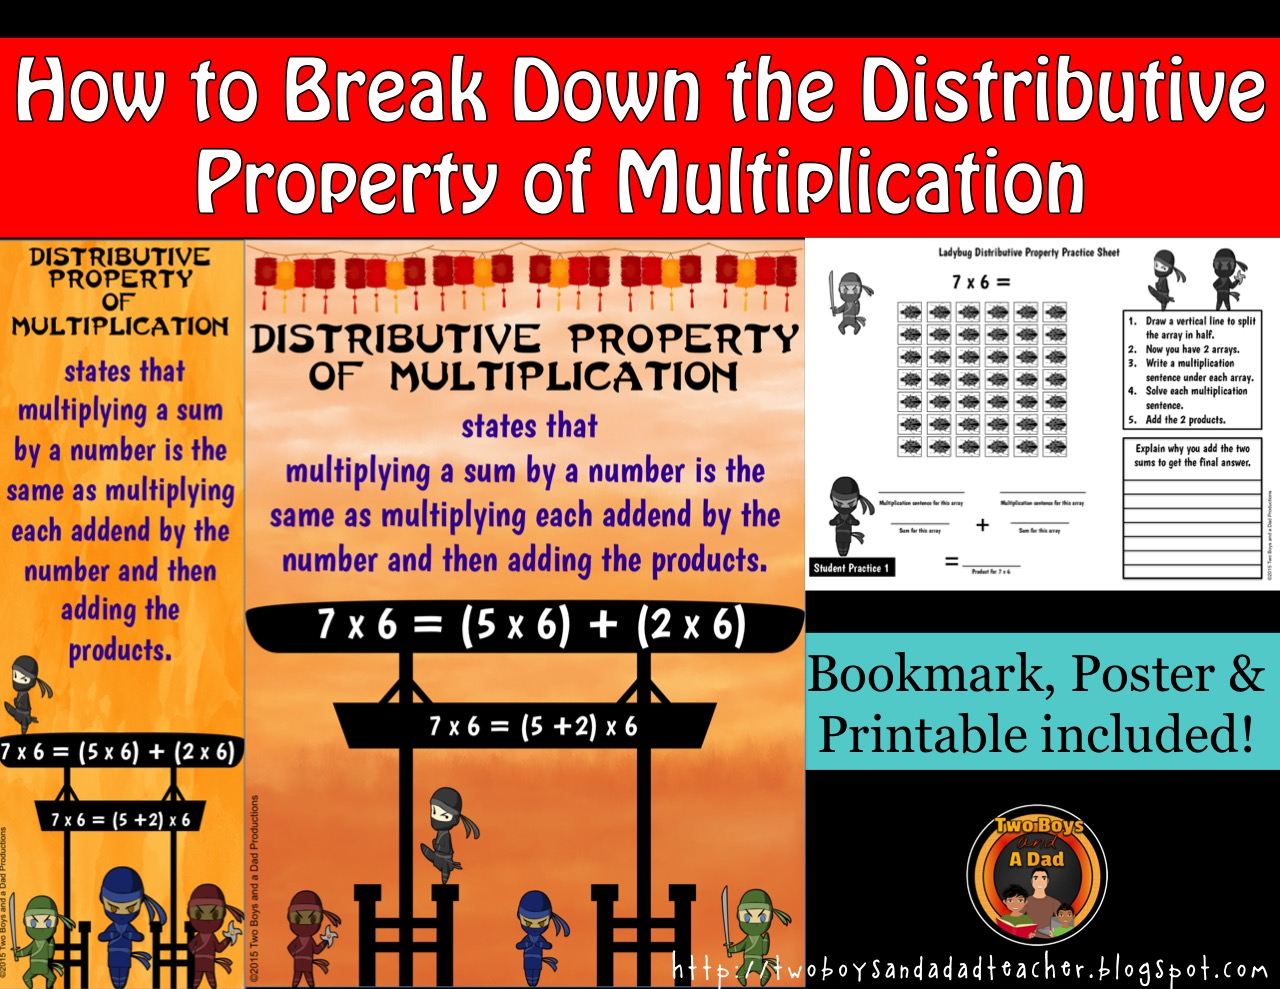 break down the distributive property of multiplication